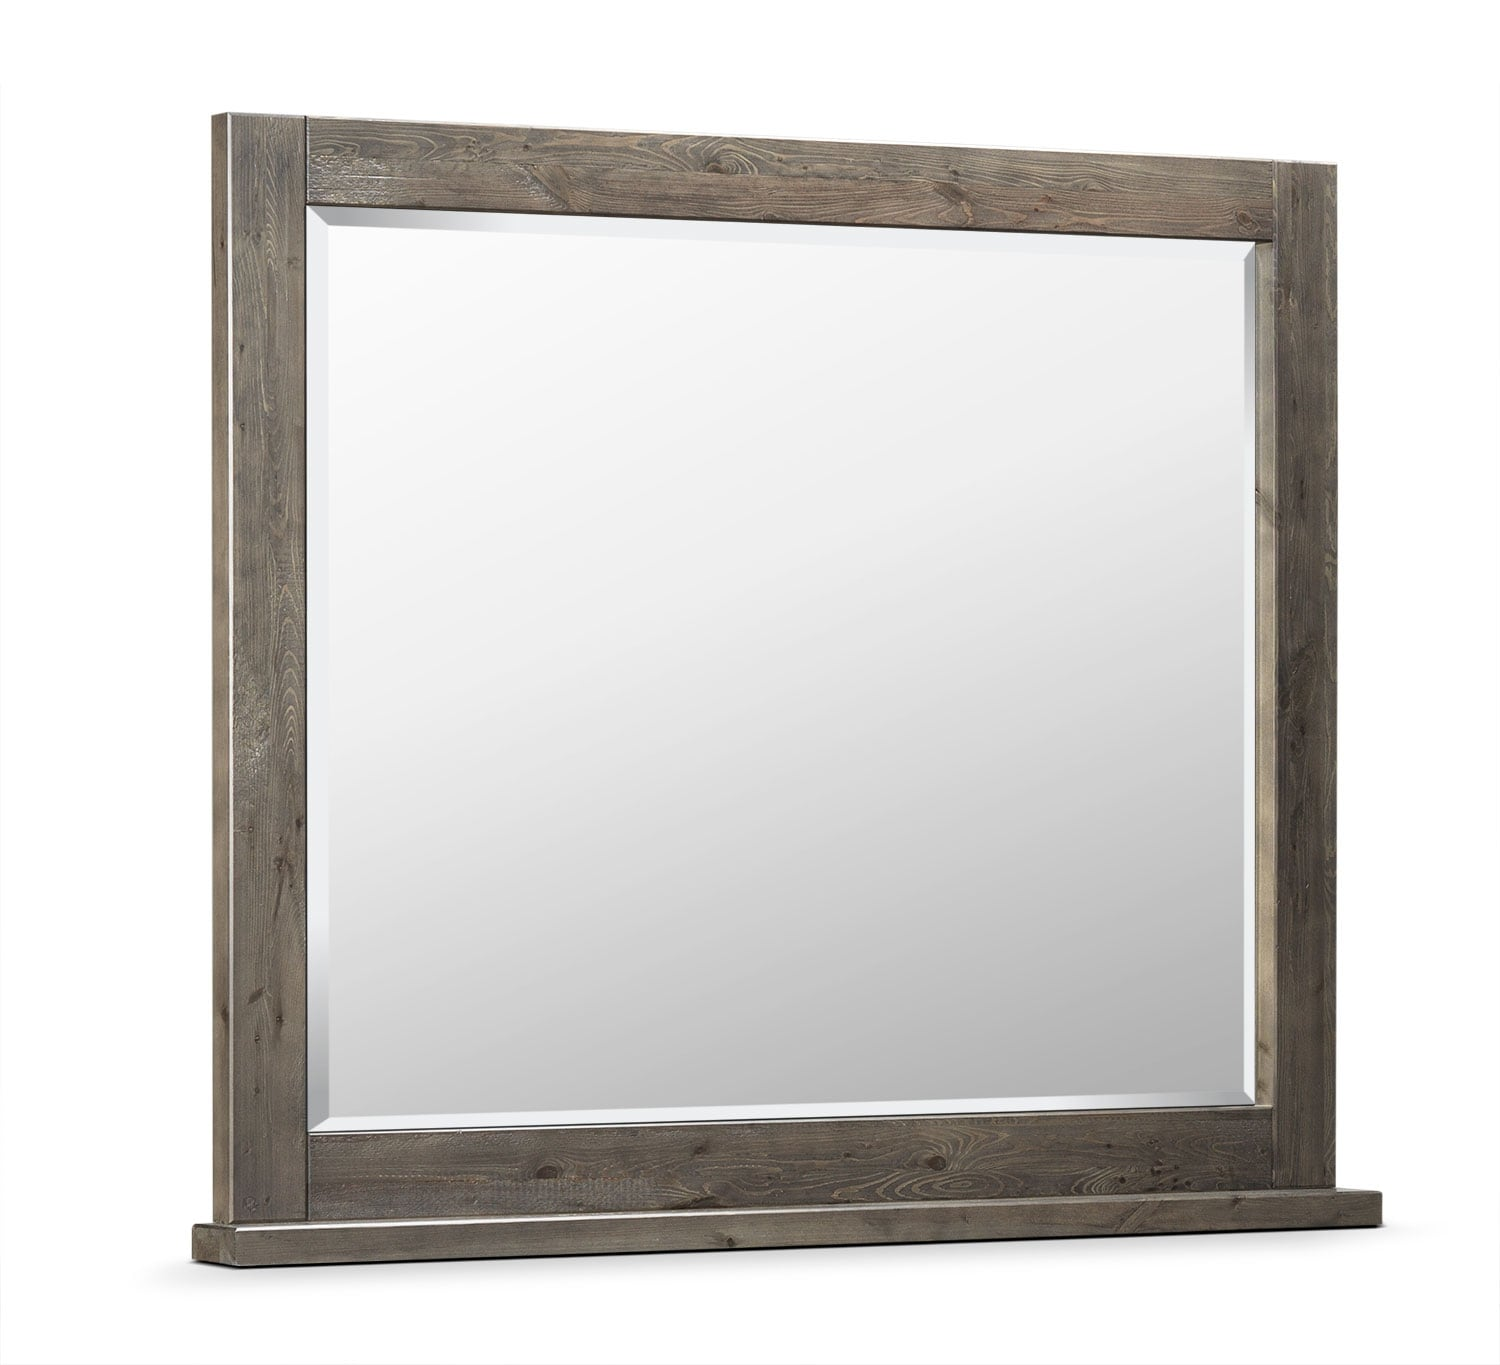 Bedroom Furniture - Pine Ridge Mirror - Slate